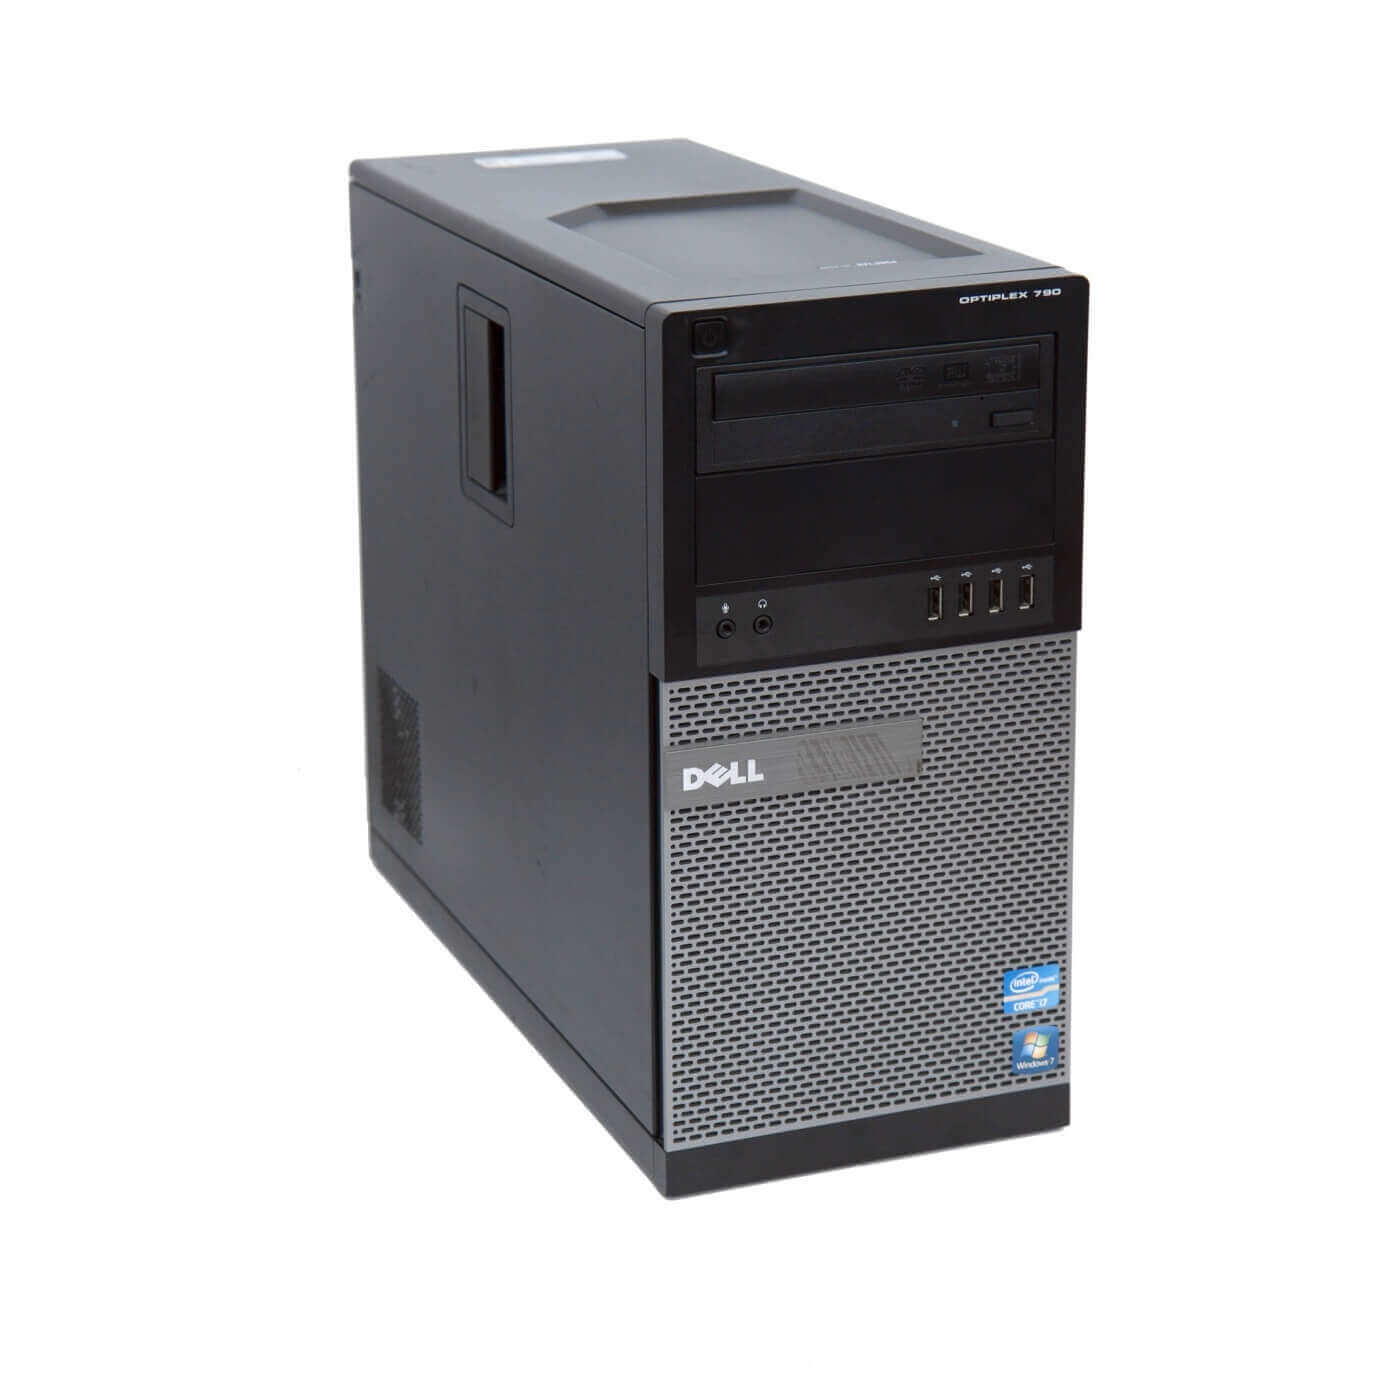 DELL 790 TOWER I5-2400 3,1 / 8192 MB DDR3 / 256 GB SSD + 320 GB / DVD-RW / WINDOWS 10 PRO